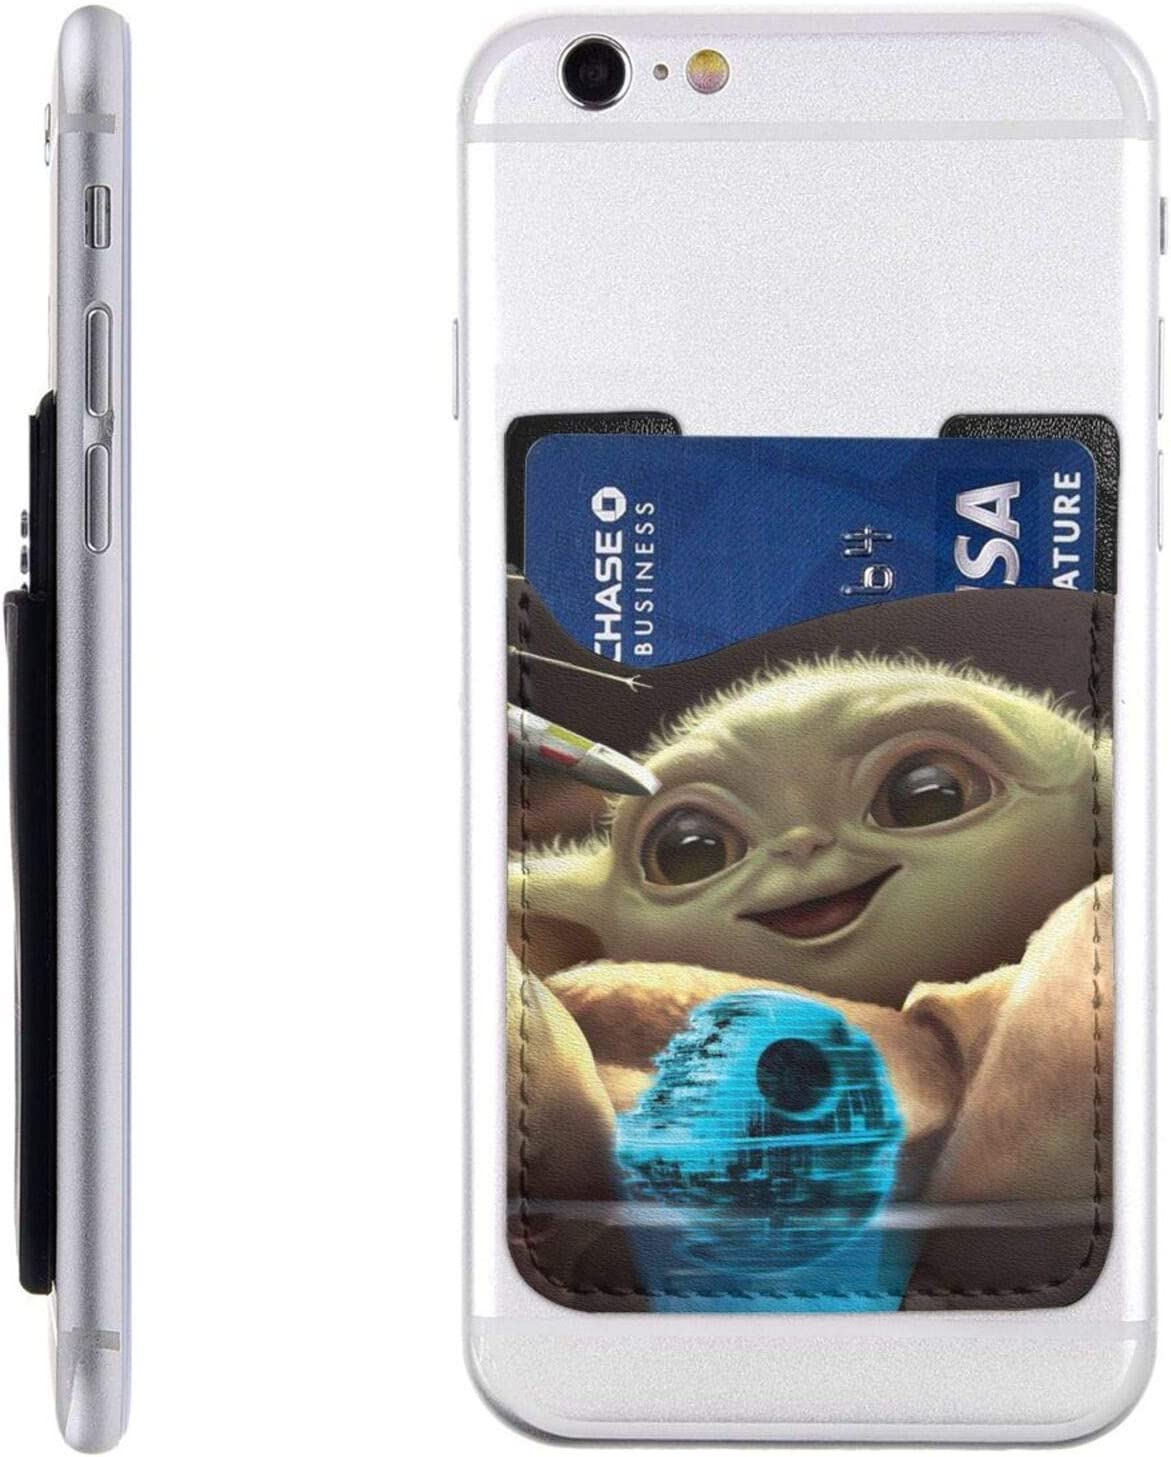 Daily bargain sale Baby-YoDa Cell Phone Max 78% OFF Card Holder Stick-On Wallet Credit Id